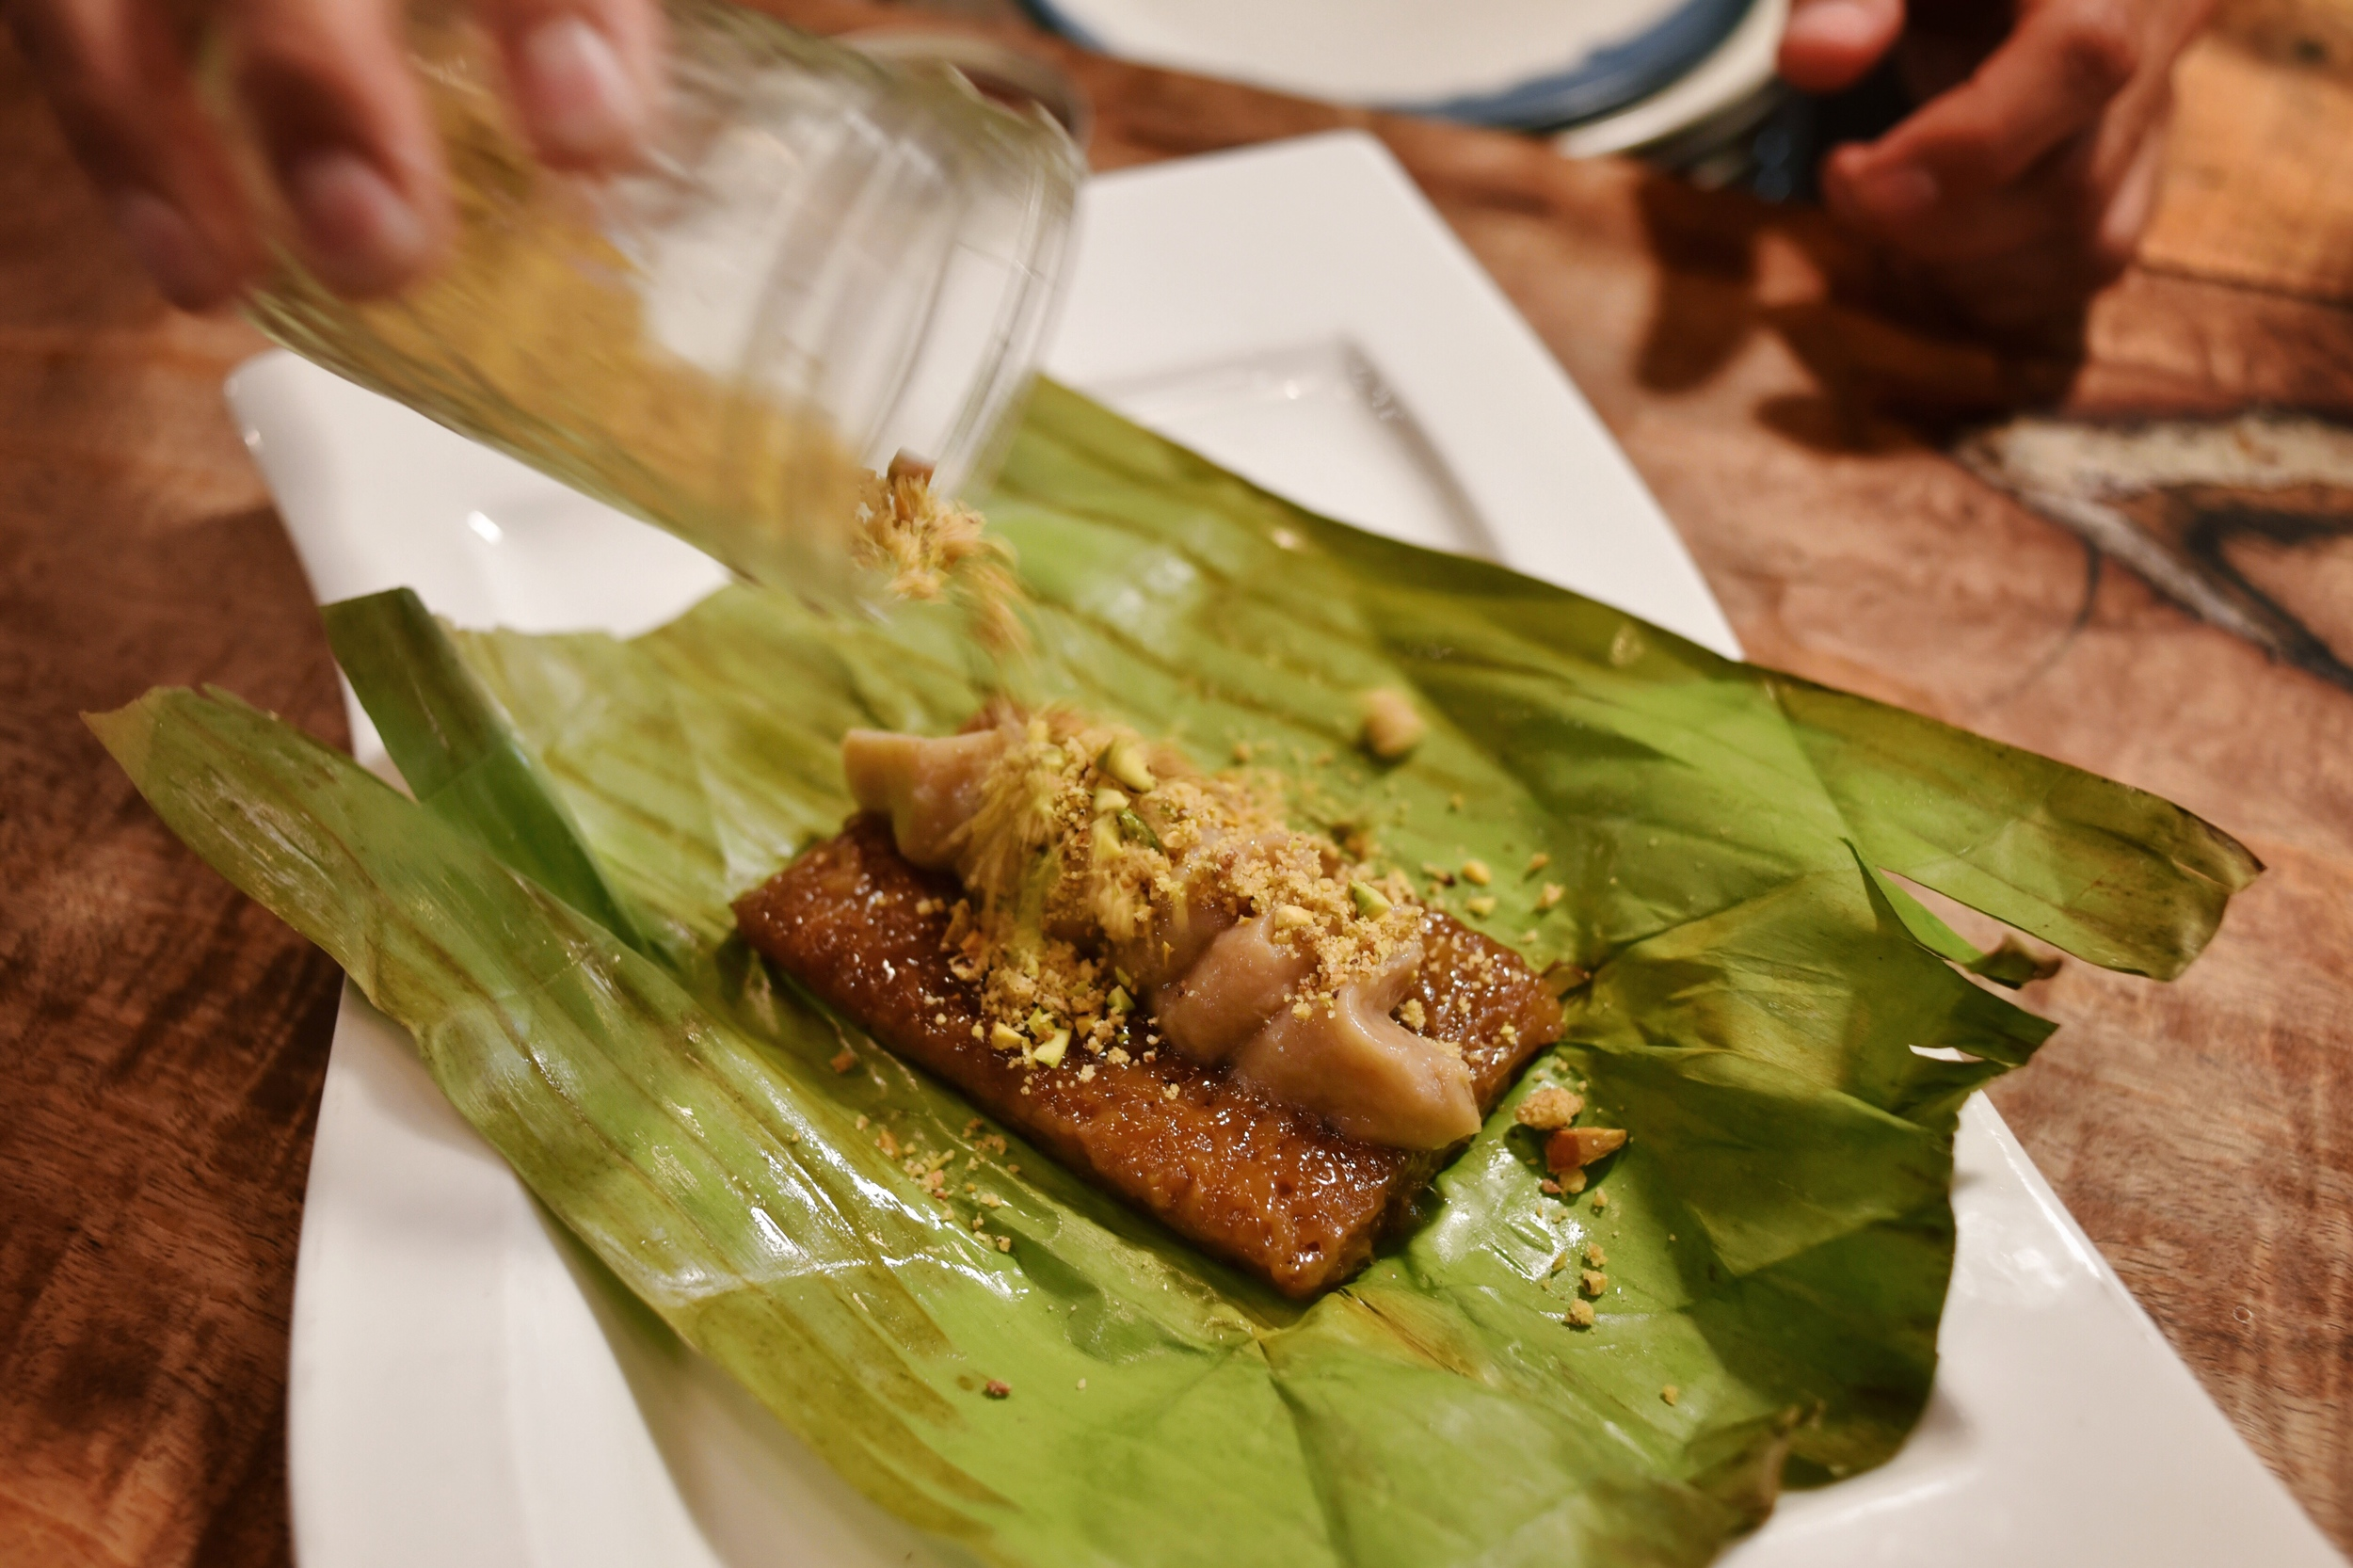 SMOKED BANANA SUMAN, warm coconut sweet rice cake, smoked banana butter and roasted pistachio crumble